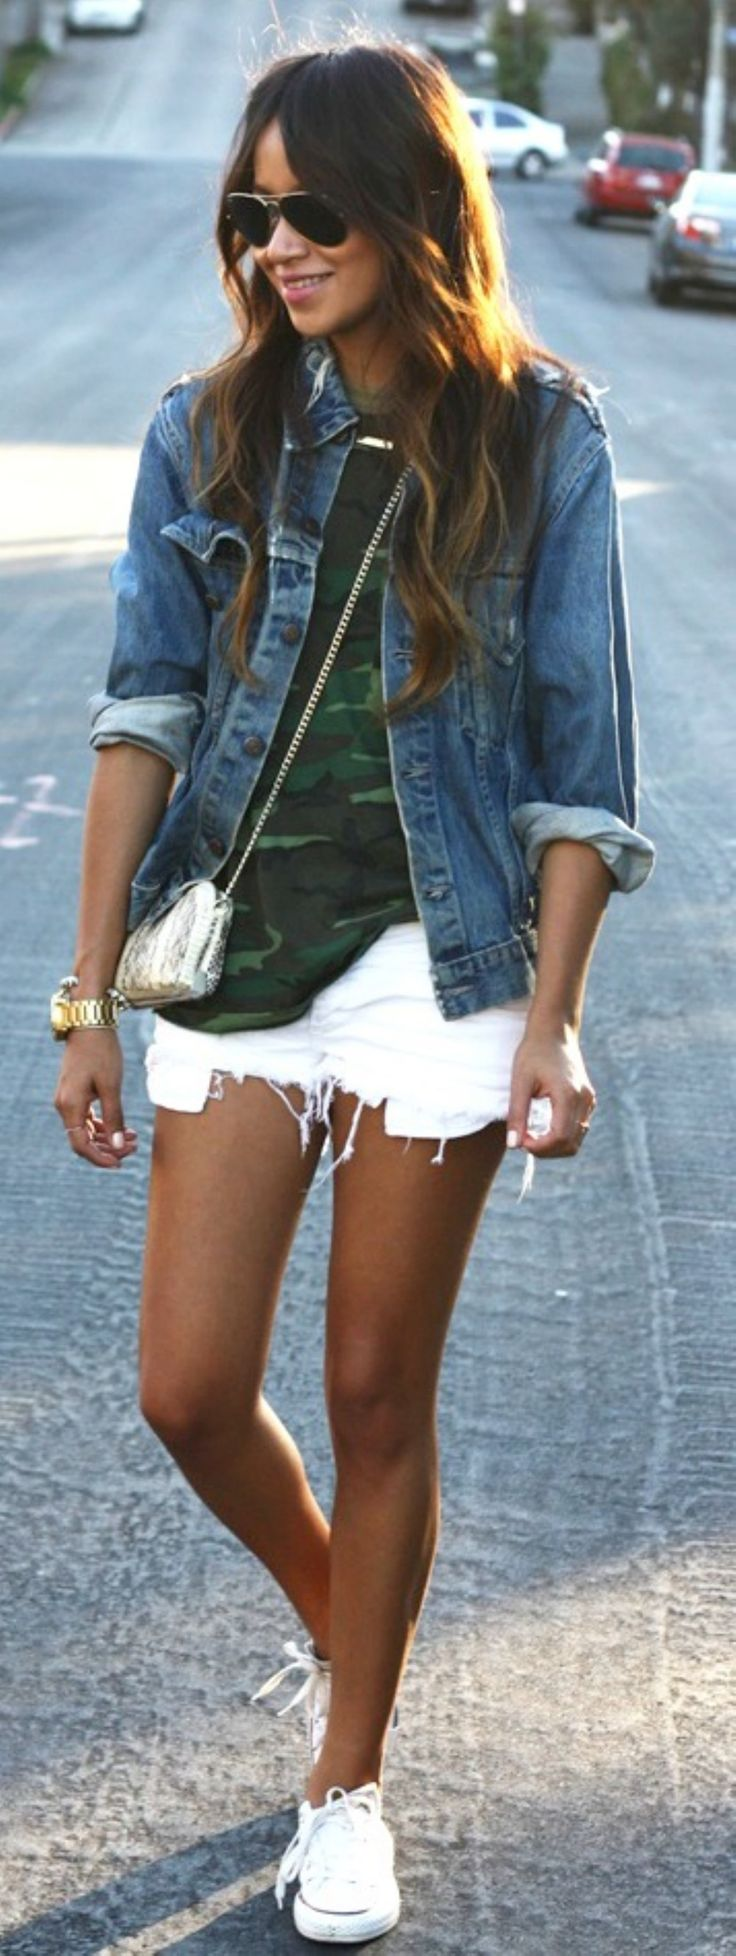 Cool 99 Simple and Fashionable Style with White Shorts Outfit from https://www.fashionetter.com/2017/04/17/simple-fashionable-style-white-shorts-outfit/